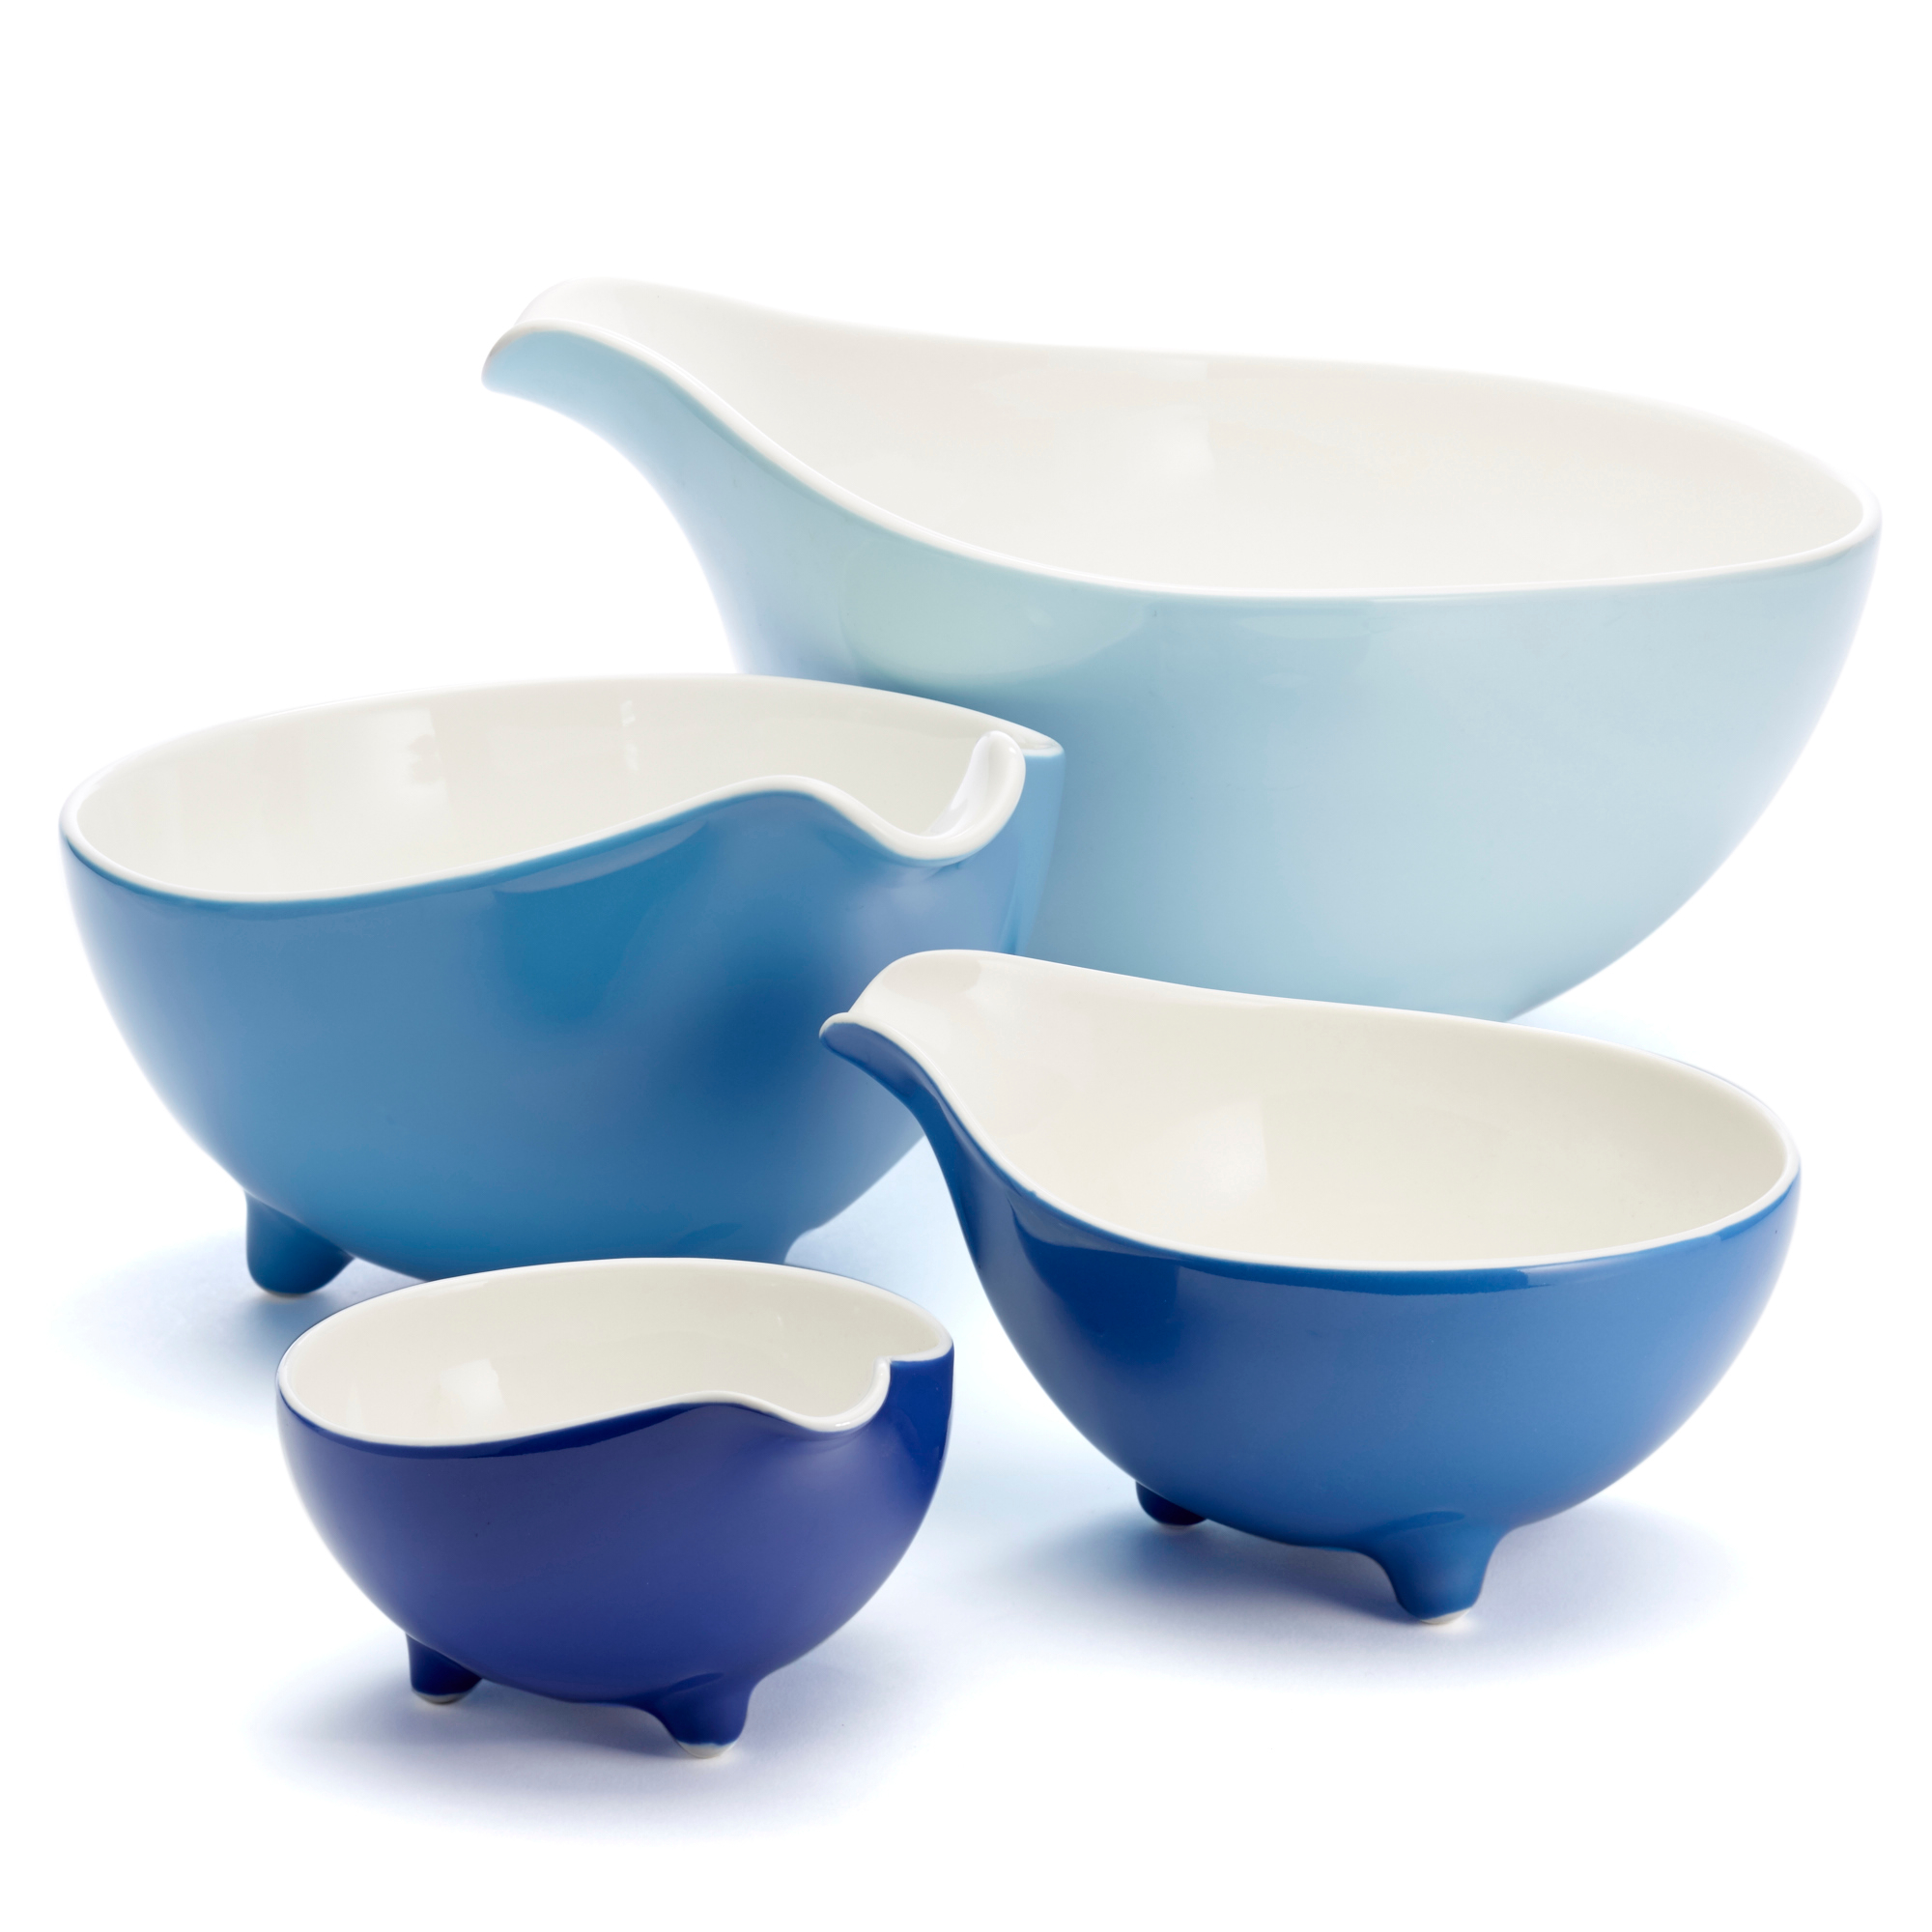 kitchen cups and plates automatic faucet loveramics blue paisley bowls set of 4 gump 39s